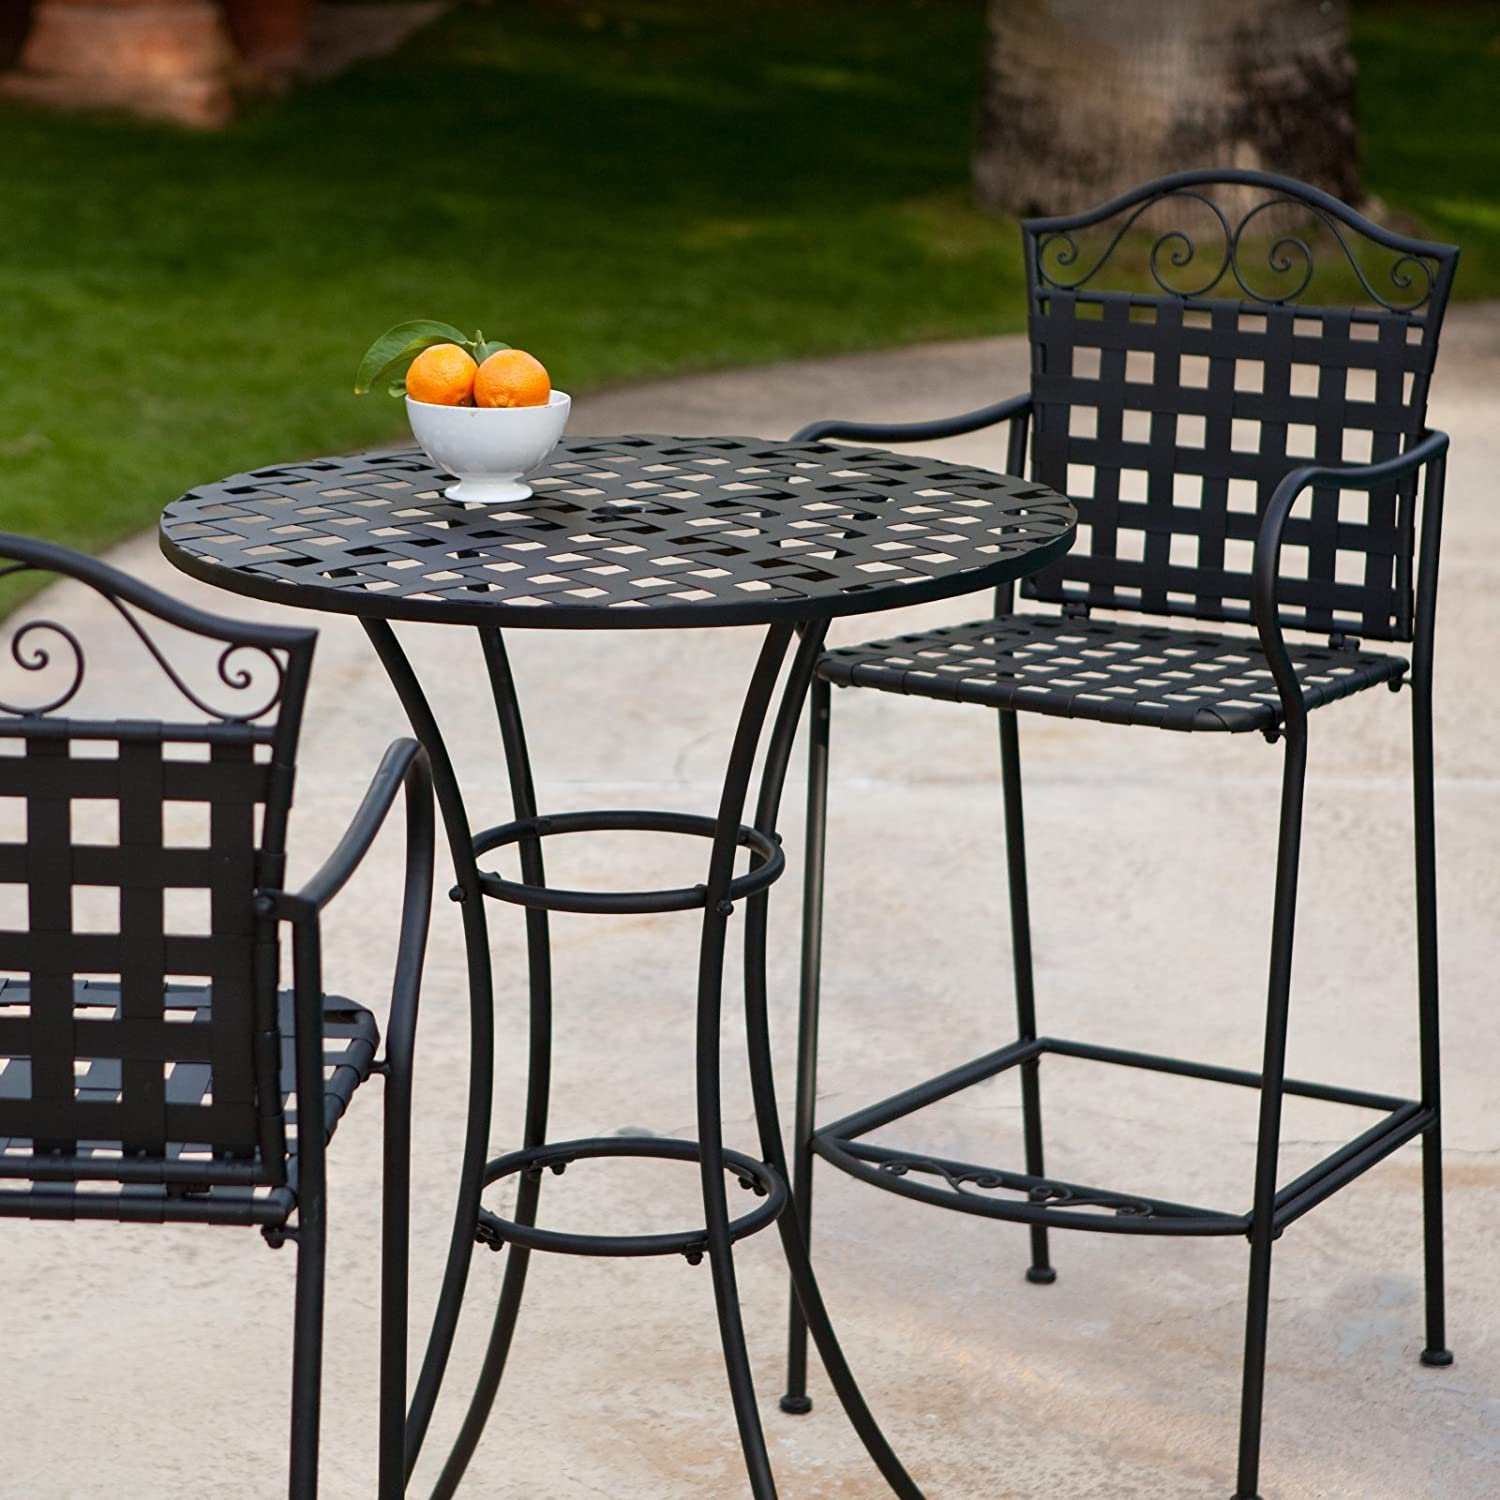 Amazon.com Belham Living Capri Wrought Iron Bar Height Bistro Table by Woodard Garden u0026 Outdoor & Amazon.com: Belham Living Capri Wrought Iron Bar Height Bistro Table ...